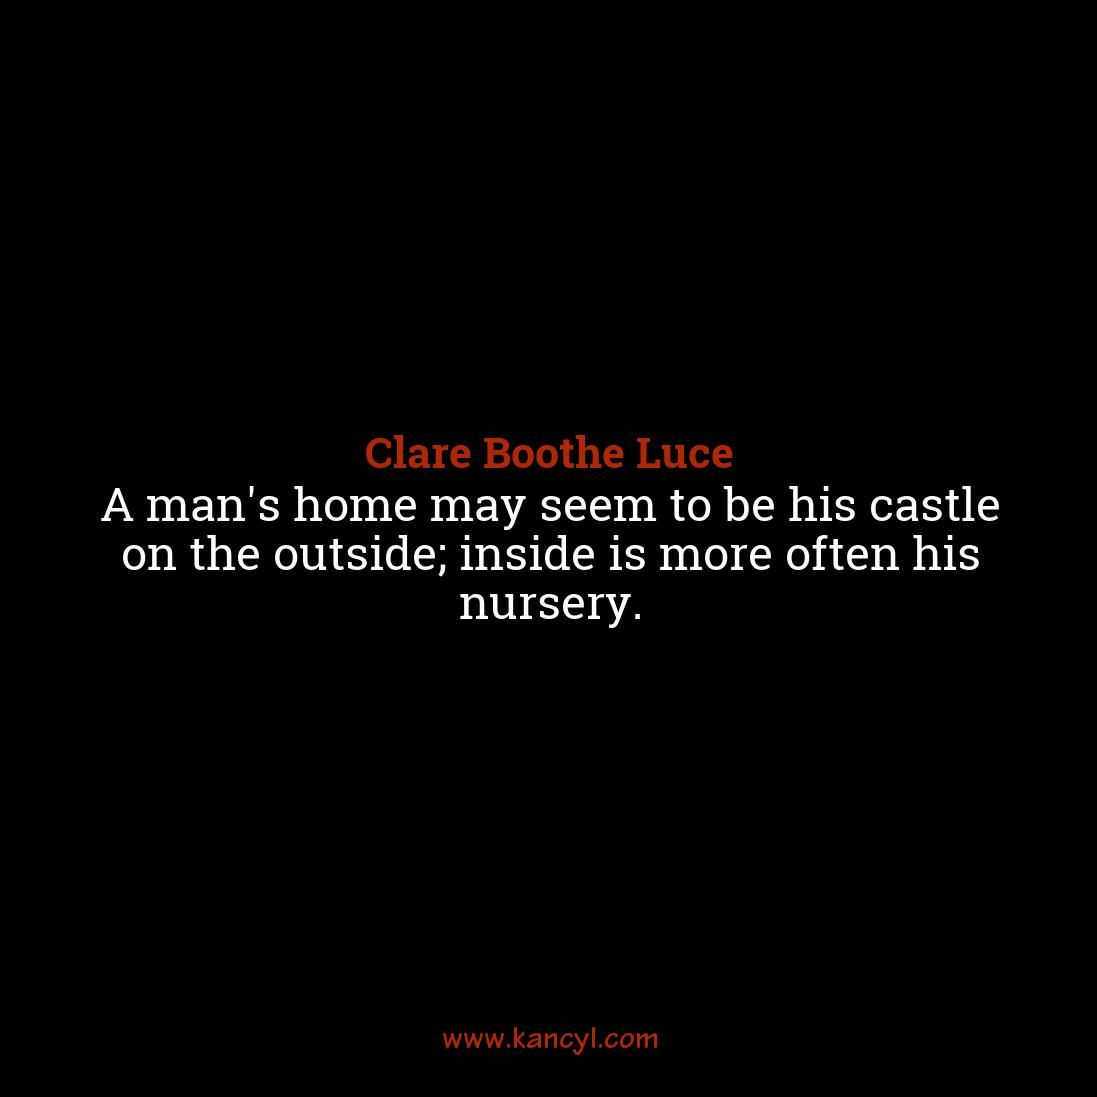 """""""A man's home may seem to be his castle on the outside; inside is more often his nursery."""", Clare Boothe Luce"""